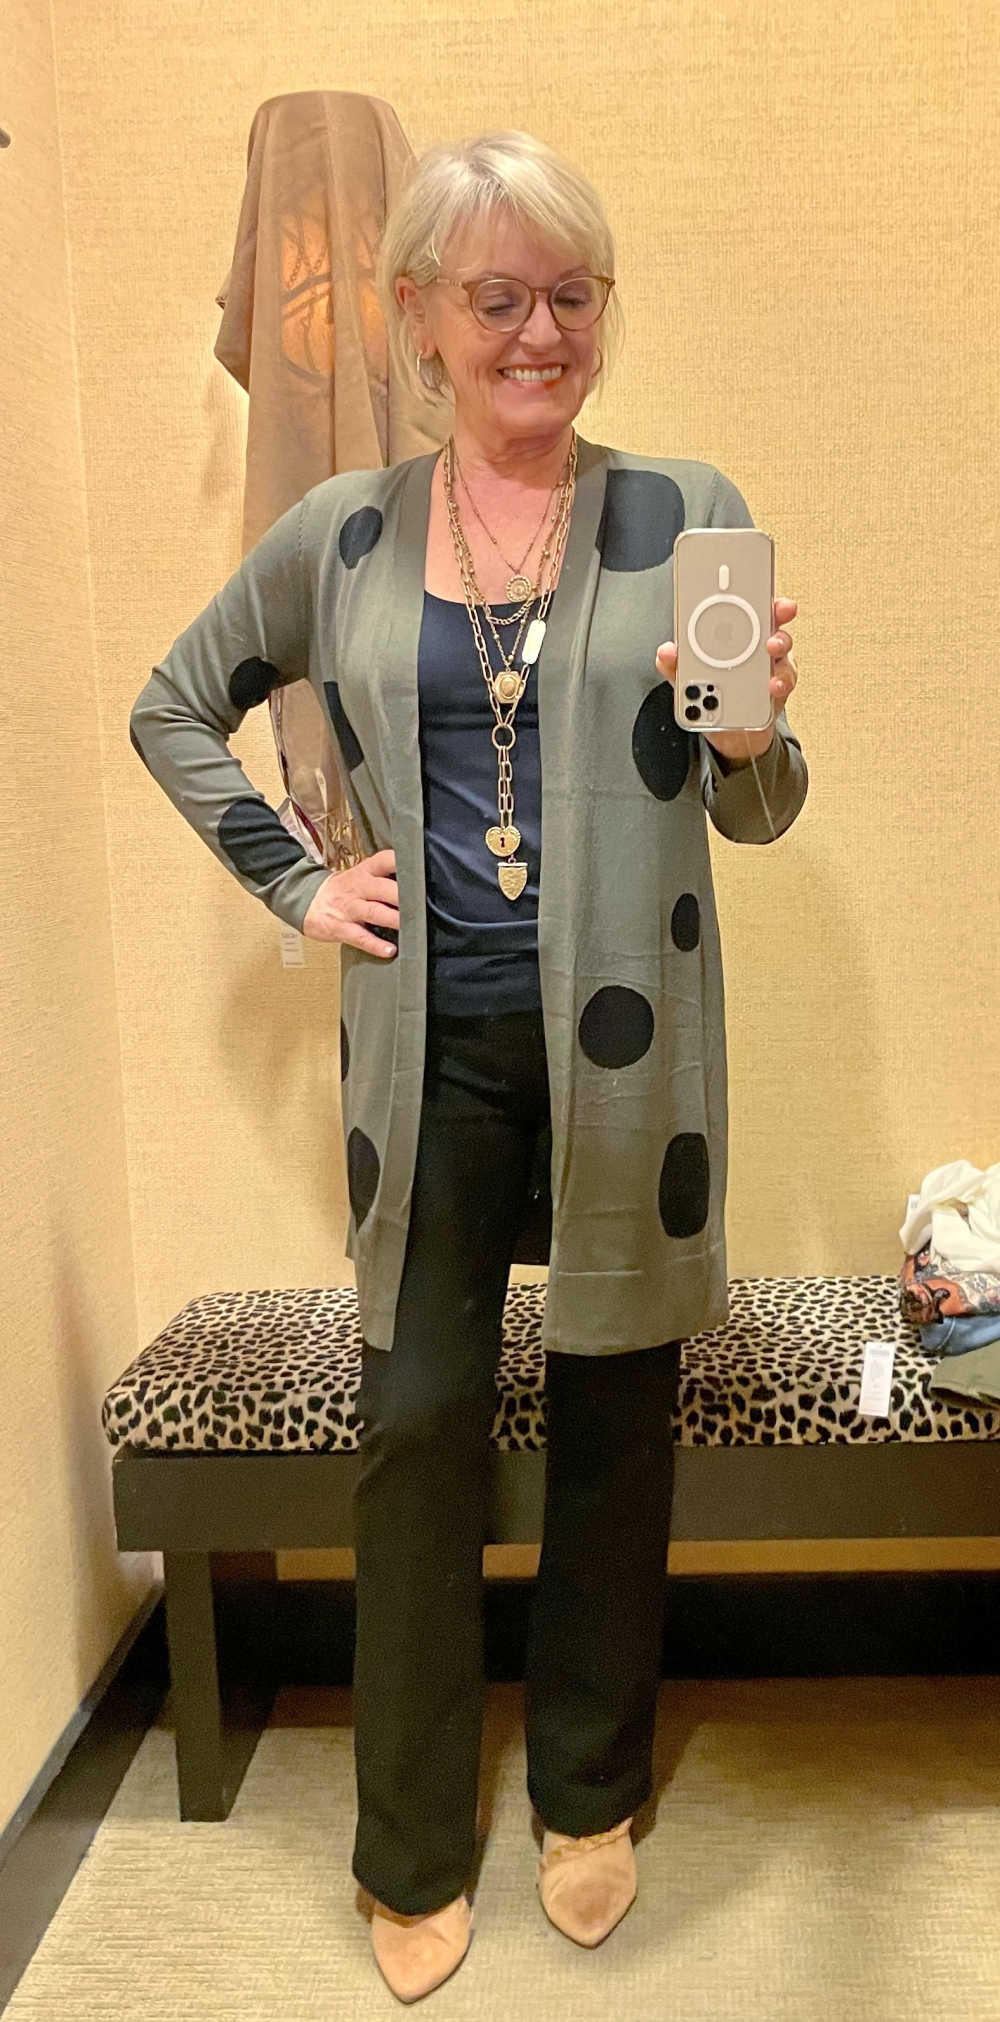 blonde woman wearing green and black polka dot cardigan in chico's store